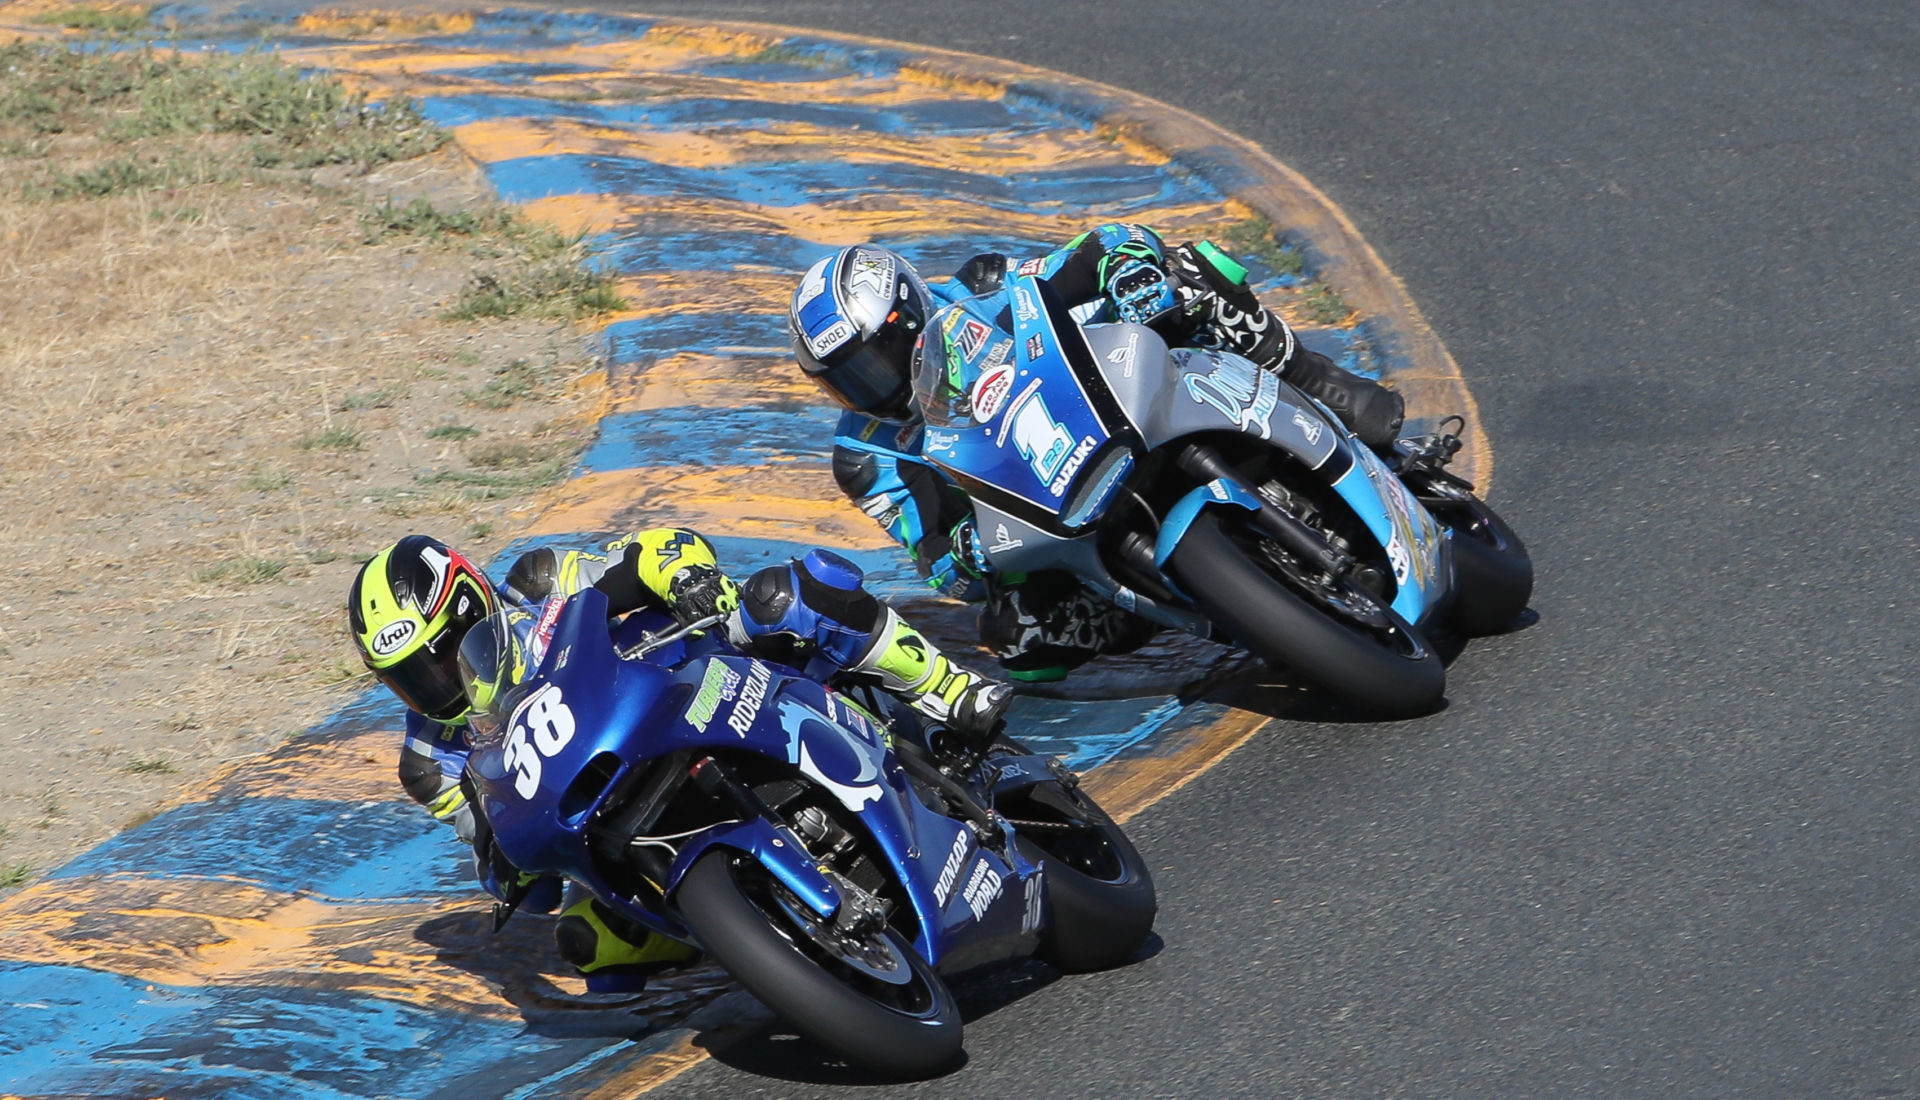 Kris Turner (38), as seen fighting with Chris Parrish (1) during the Twins Cup race at Sonoma Raceway. Photo by Brian J. Nelson.